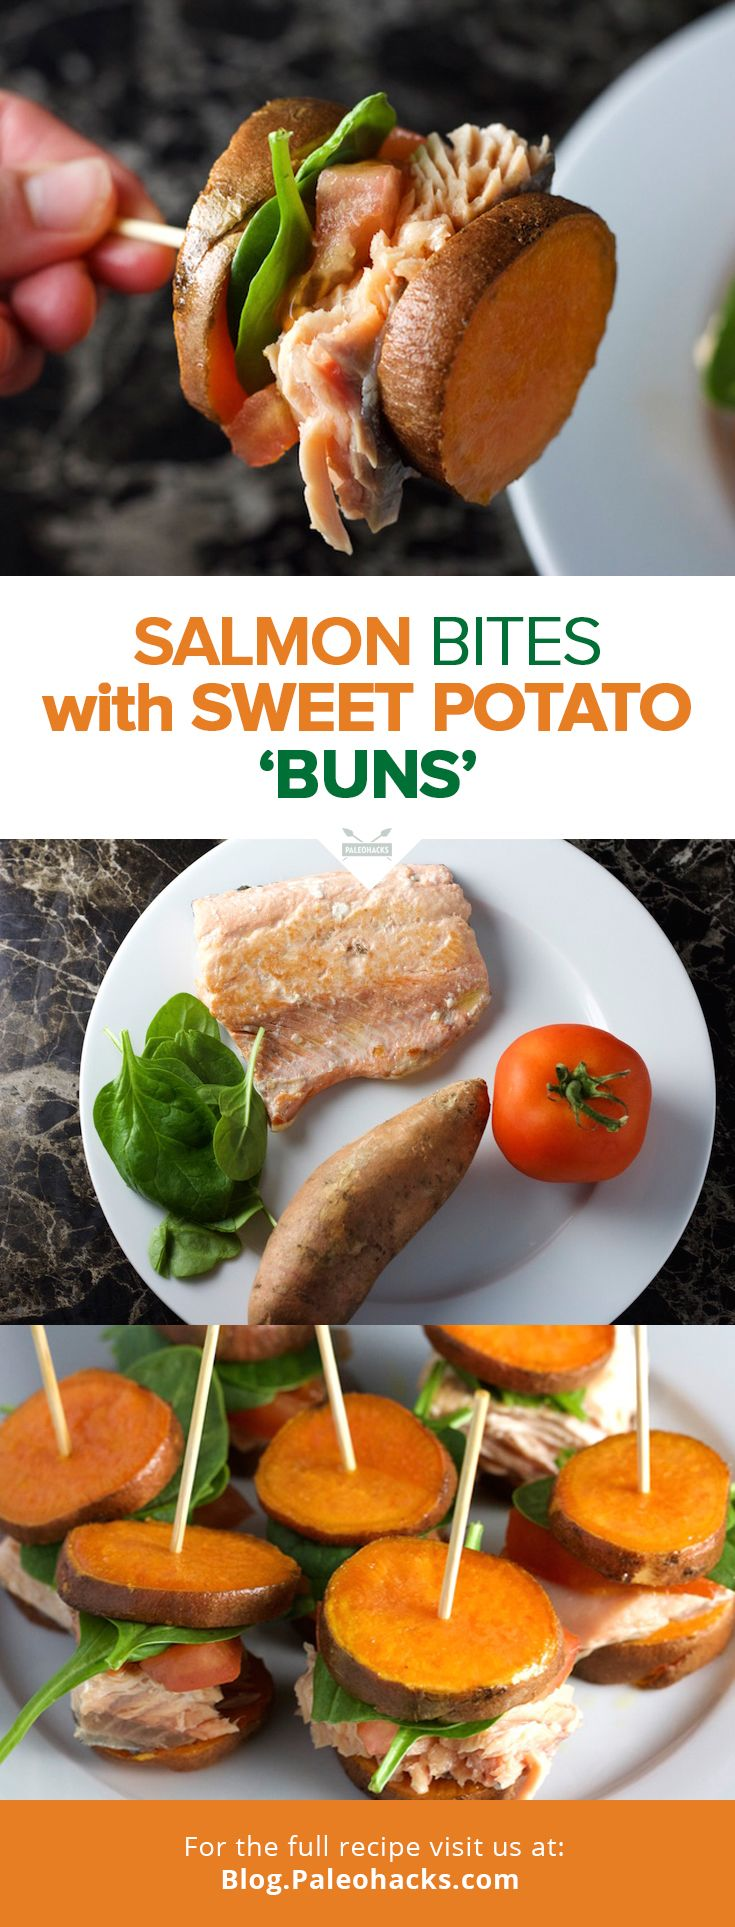 PIN-salmon-bites-w-sweet-potato-buns.jpg